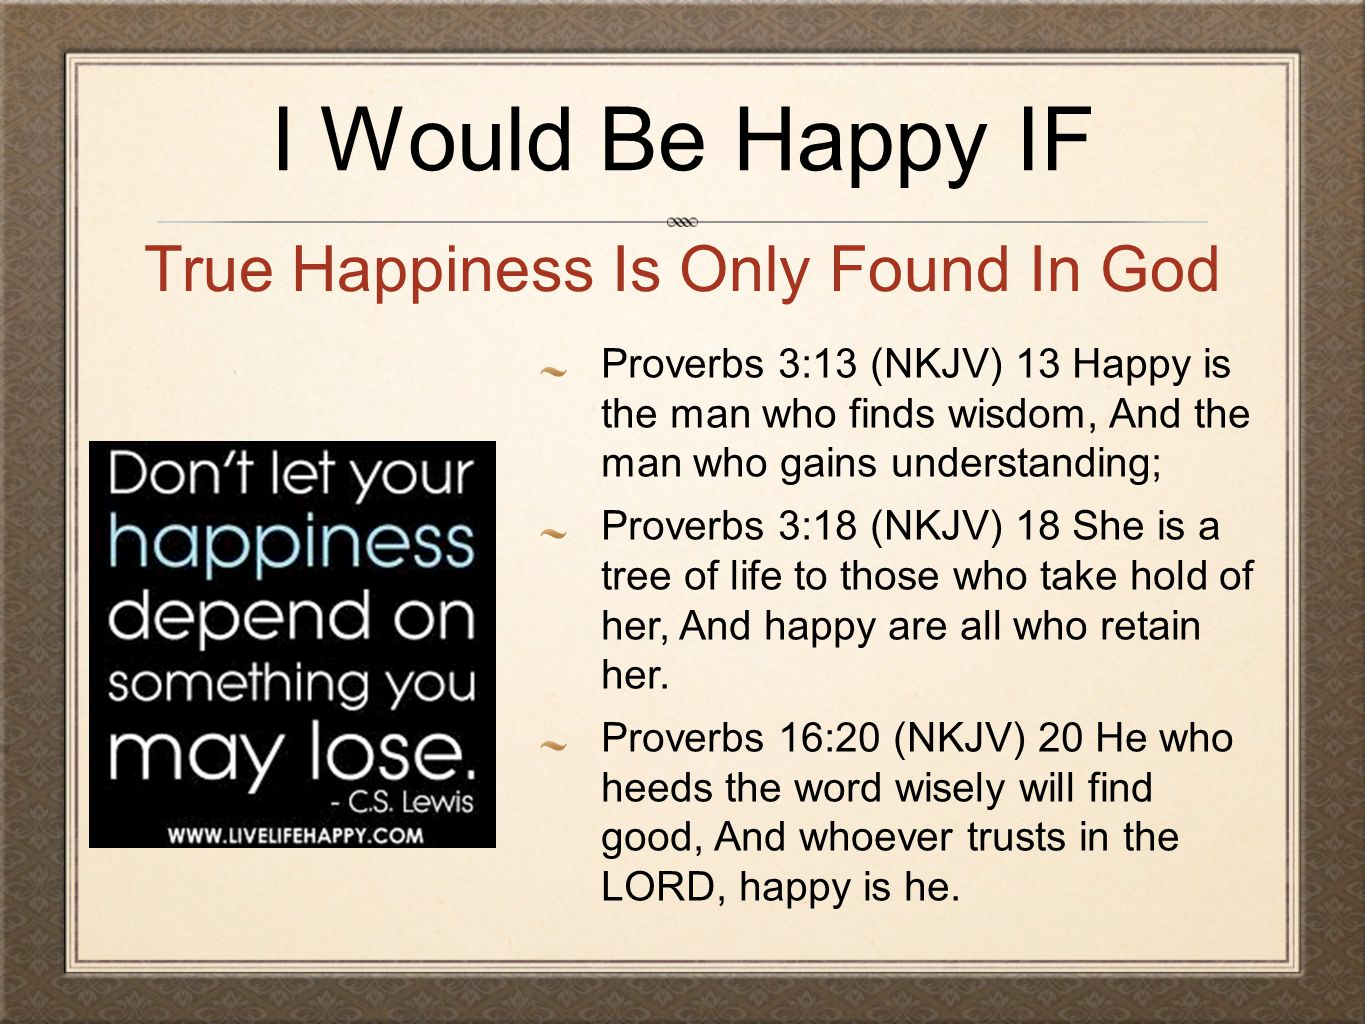 I Would Be Happy IF Proverbs 3:13 (NKJV) 13 Happy is the man who finds wisdom, And the man who gains understanding; Proverbs 3:18 (NKJV) 18 She is a tree of life to those who take hold of her, And happy are all who retain her.